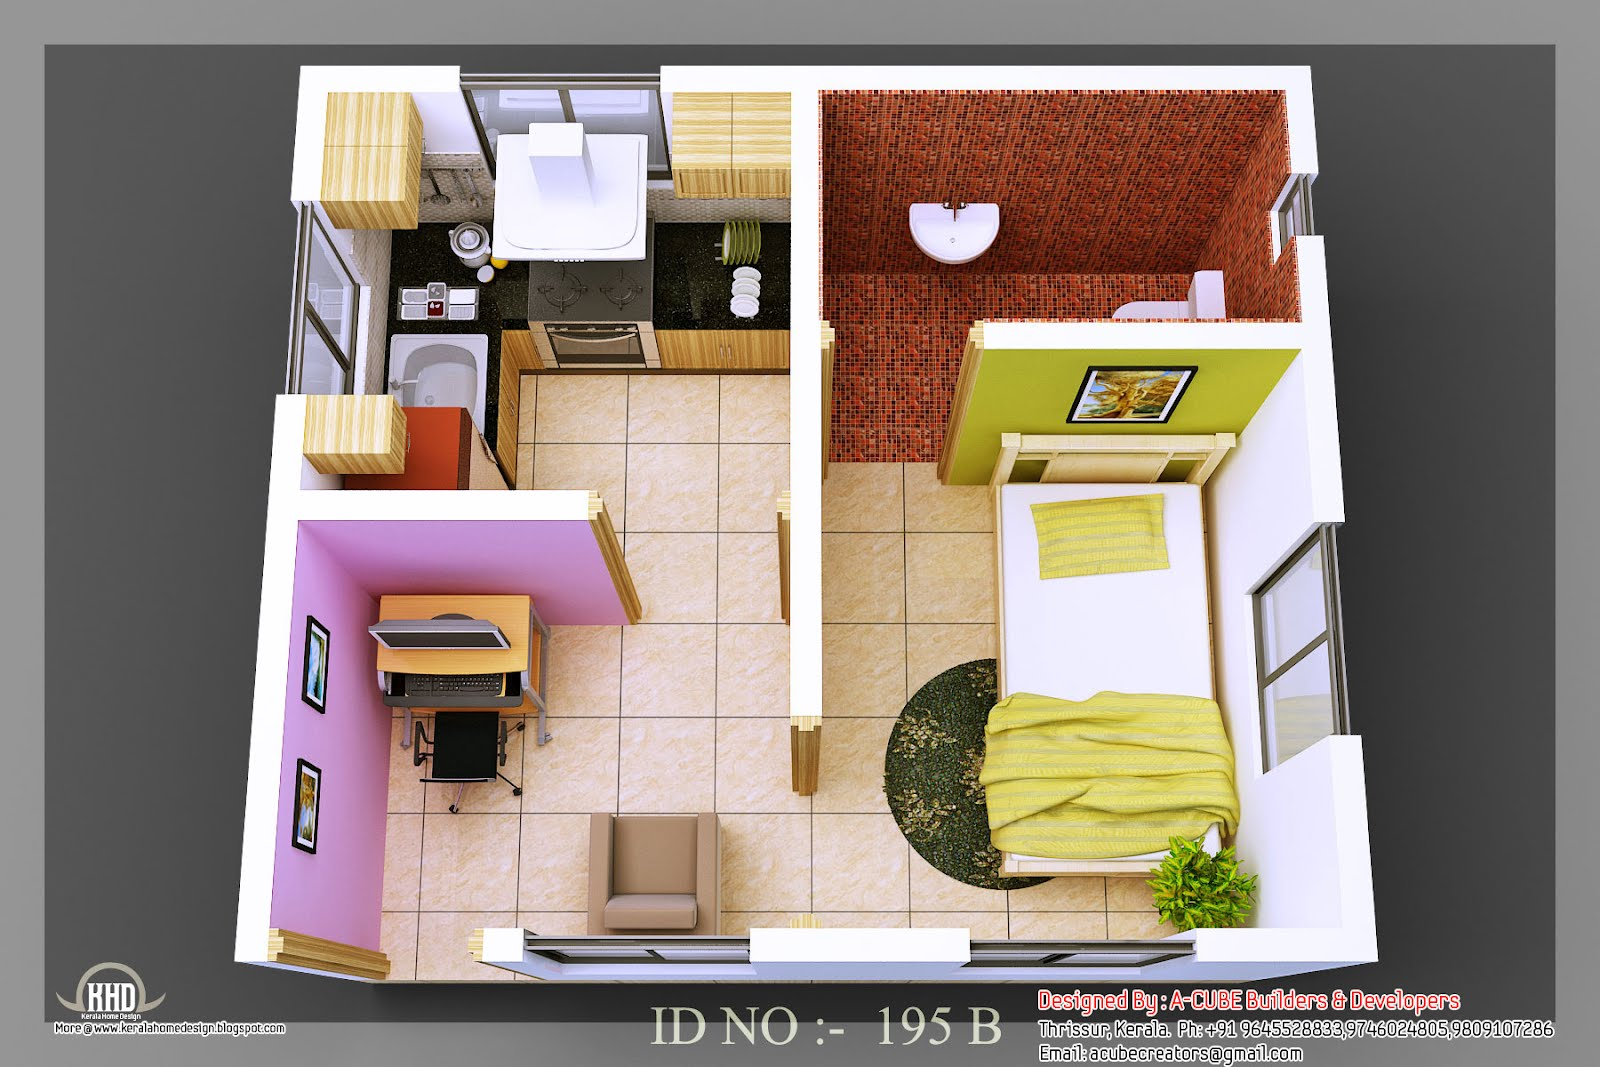 3d isometric views of small house plans kerala home for Small home interior design ideas